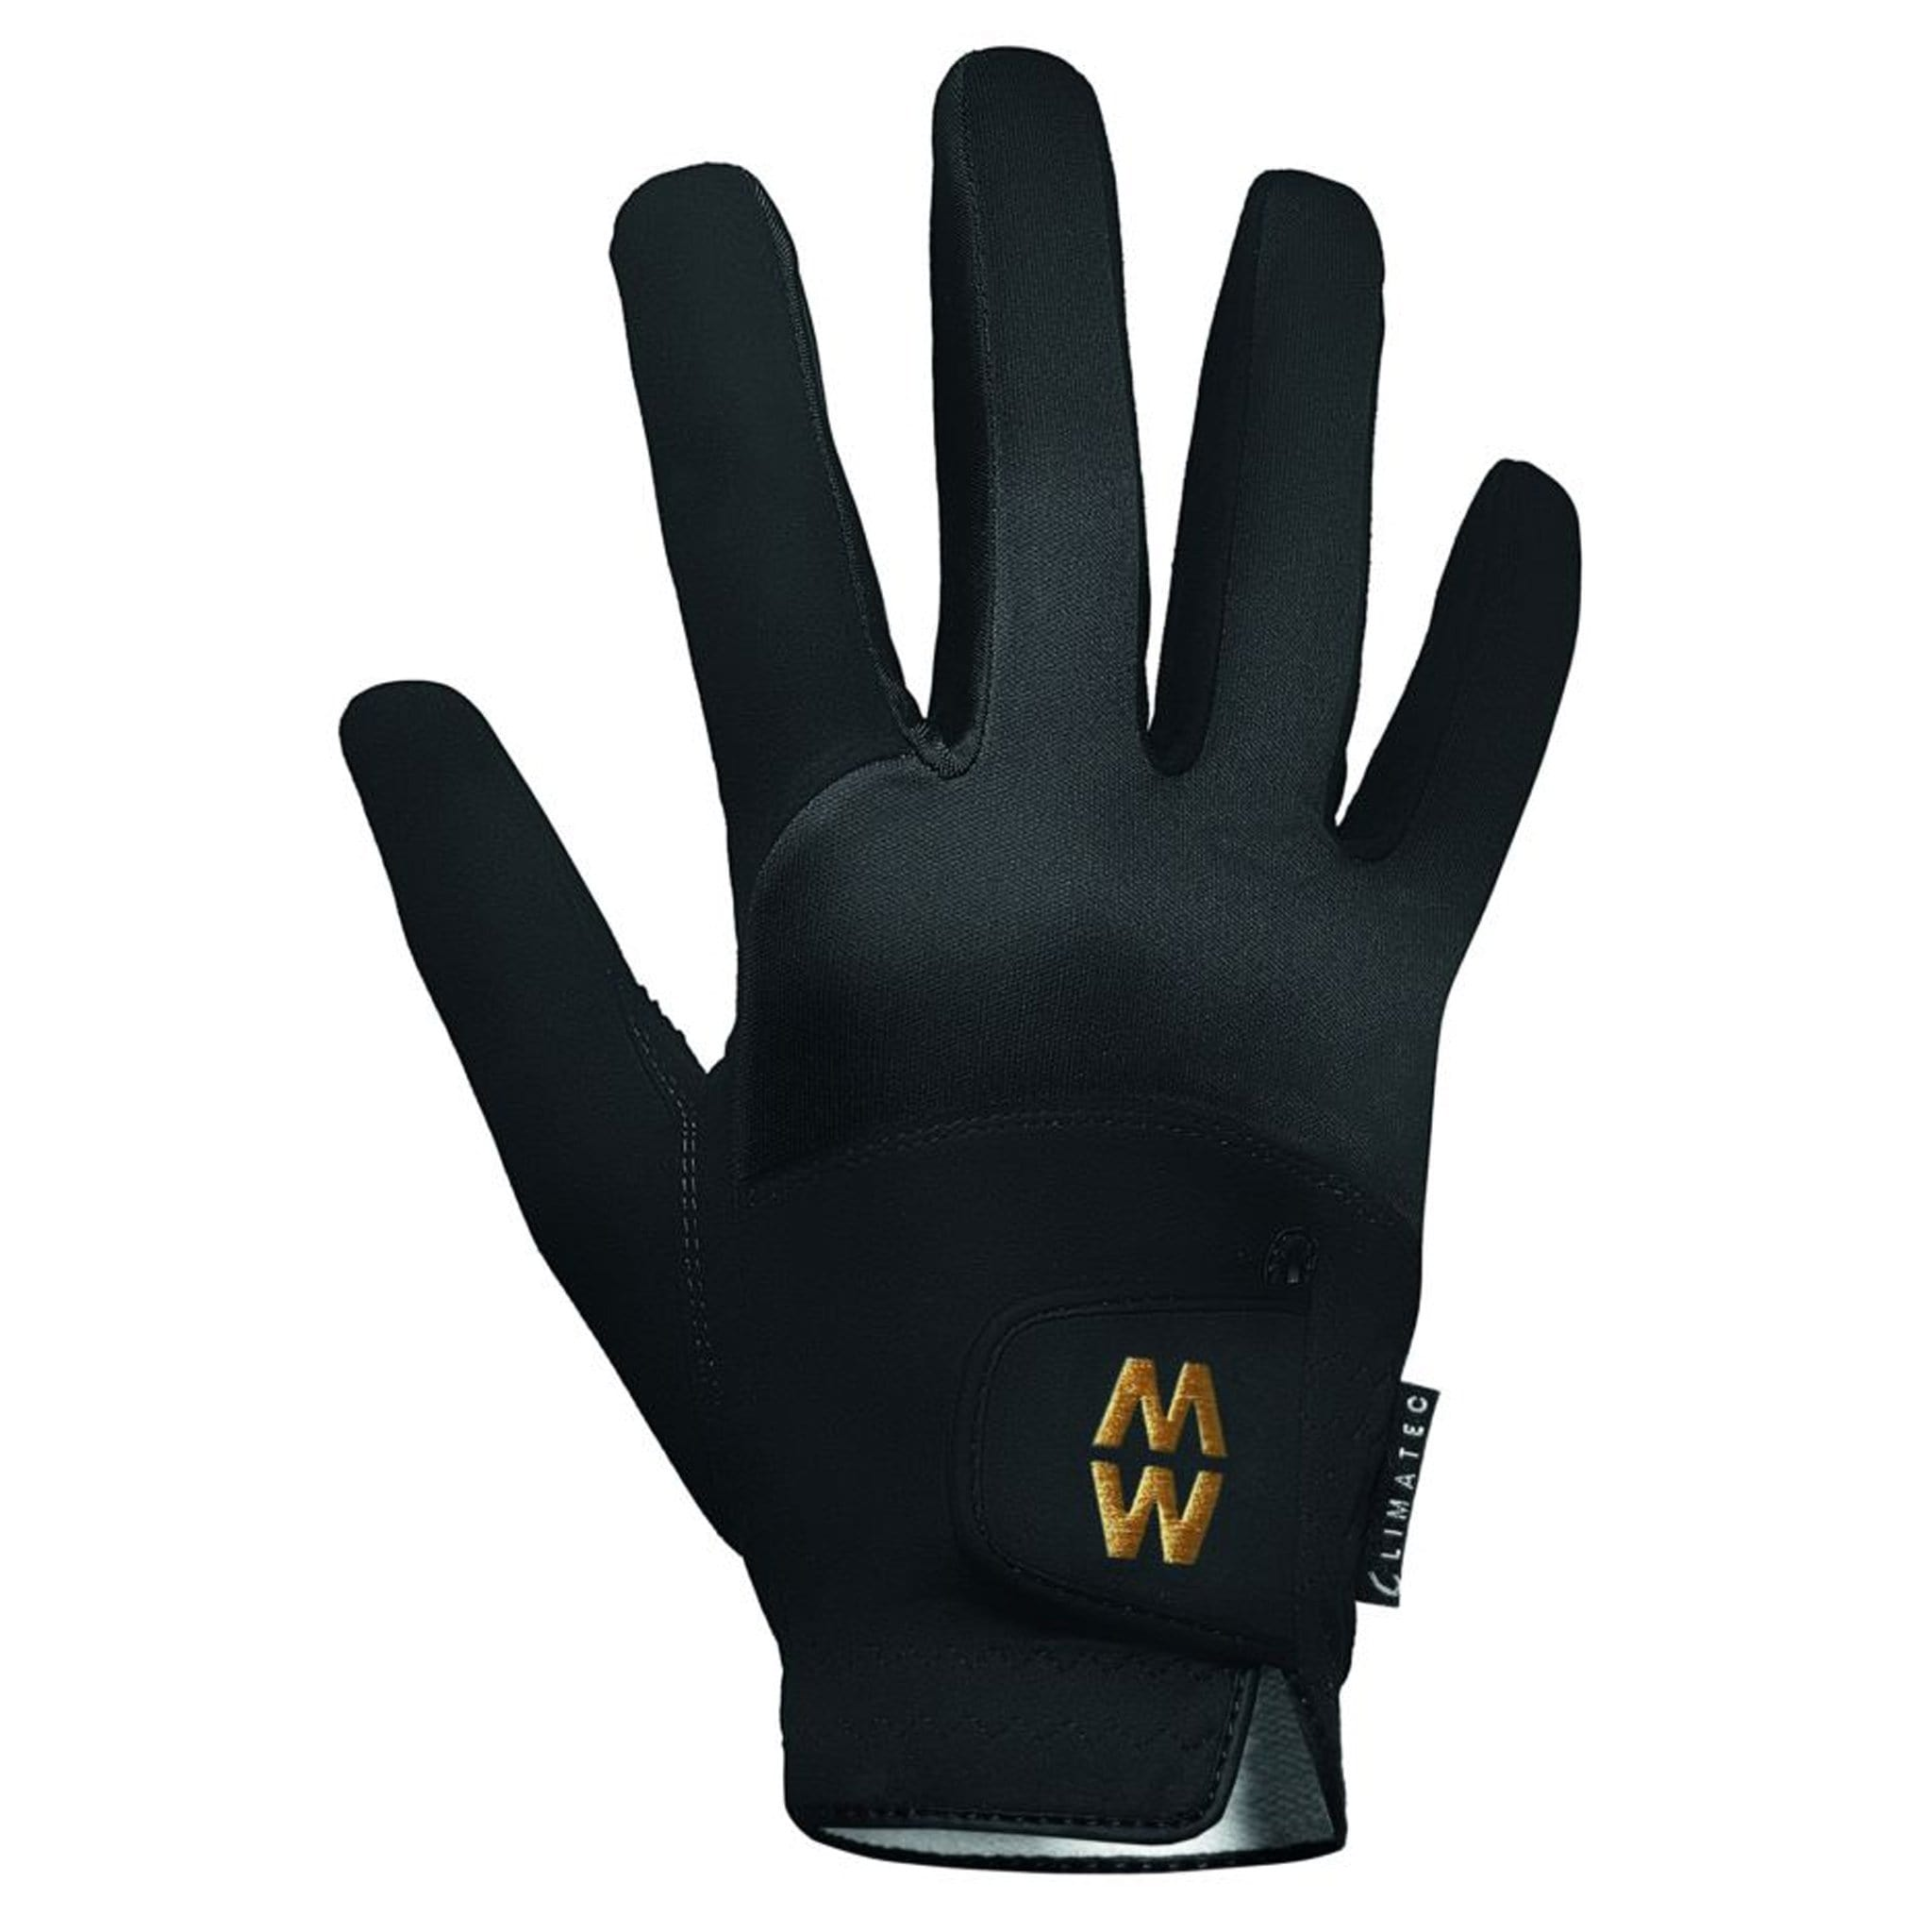 MacWet Climatec Short Cuff Gloves Black 2598.